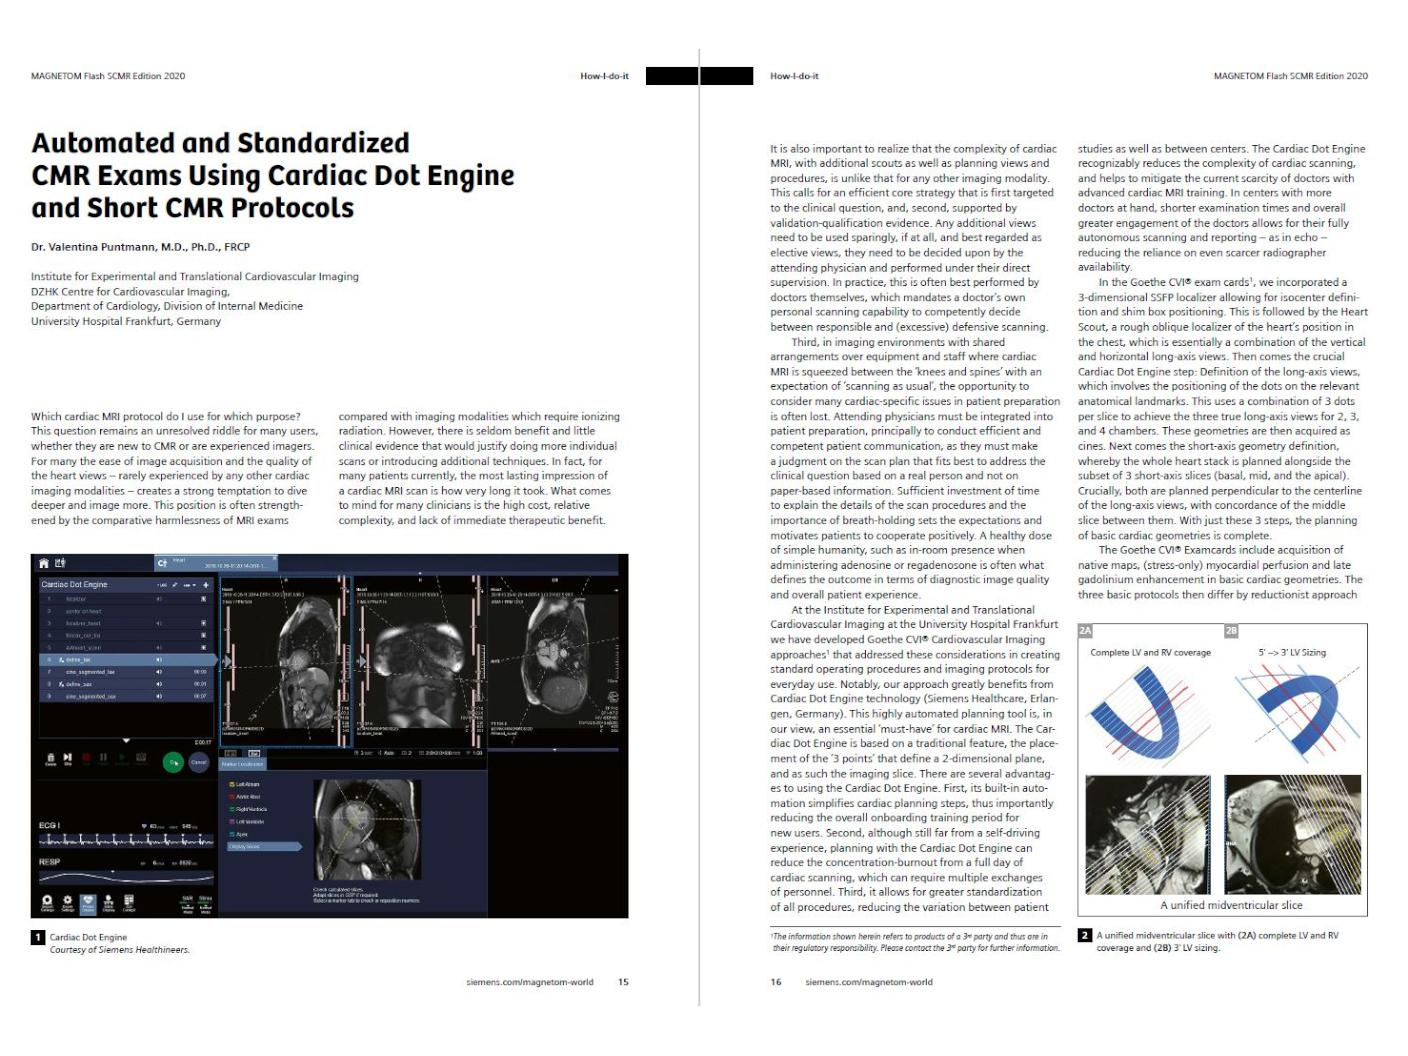 Automated and Standardized CMR Exams Using Cardiac Dot Engine and Short CMR Protocols